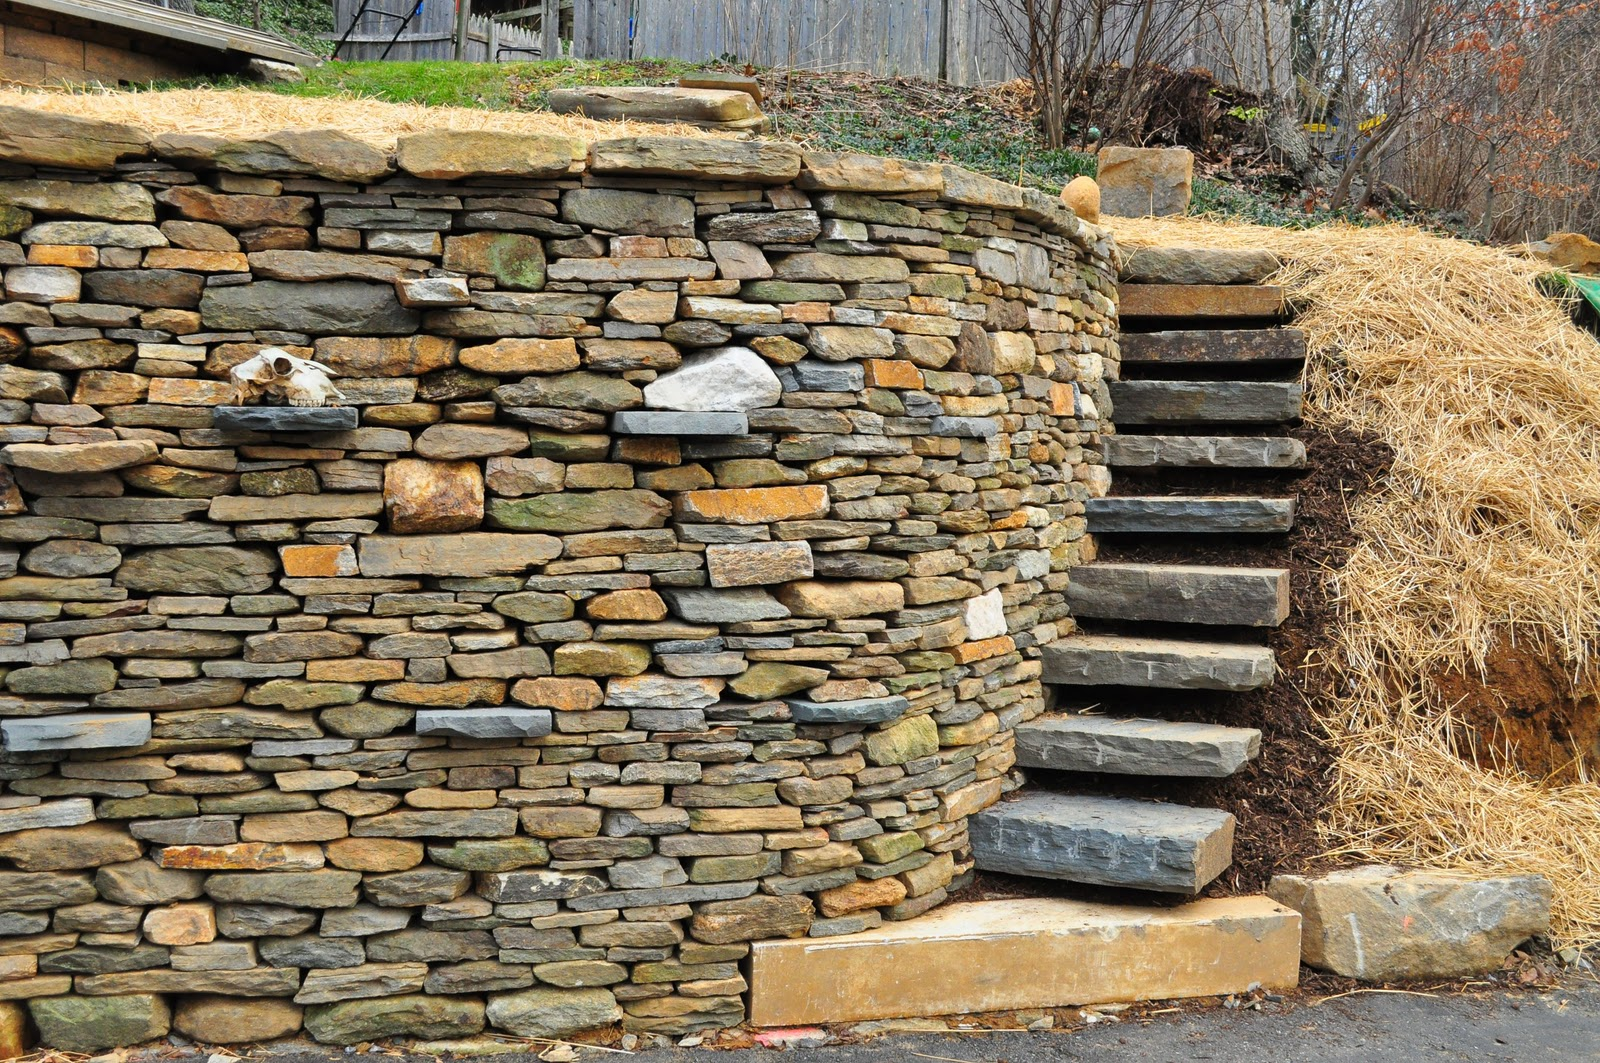 Dry Stone Wall Seminar in Donegal - MED Partnership Group |Cobblestone Wall